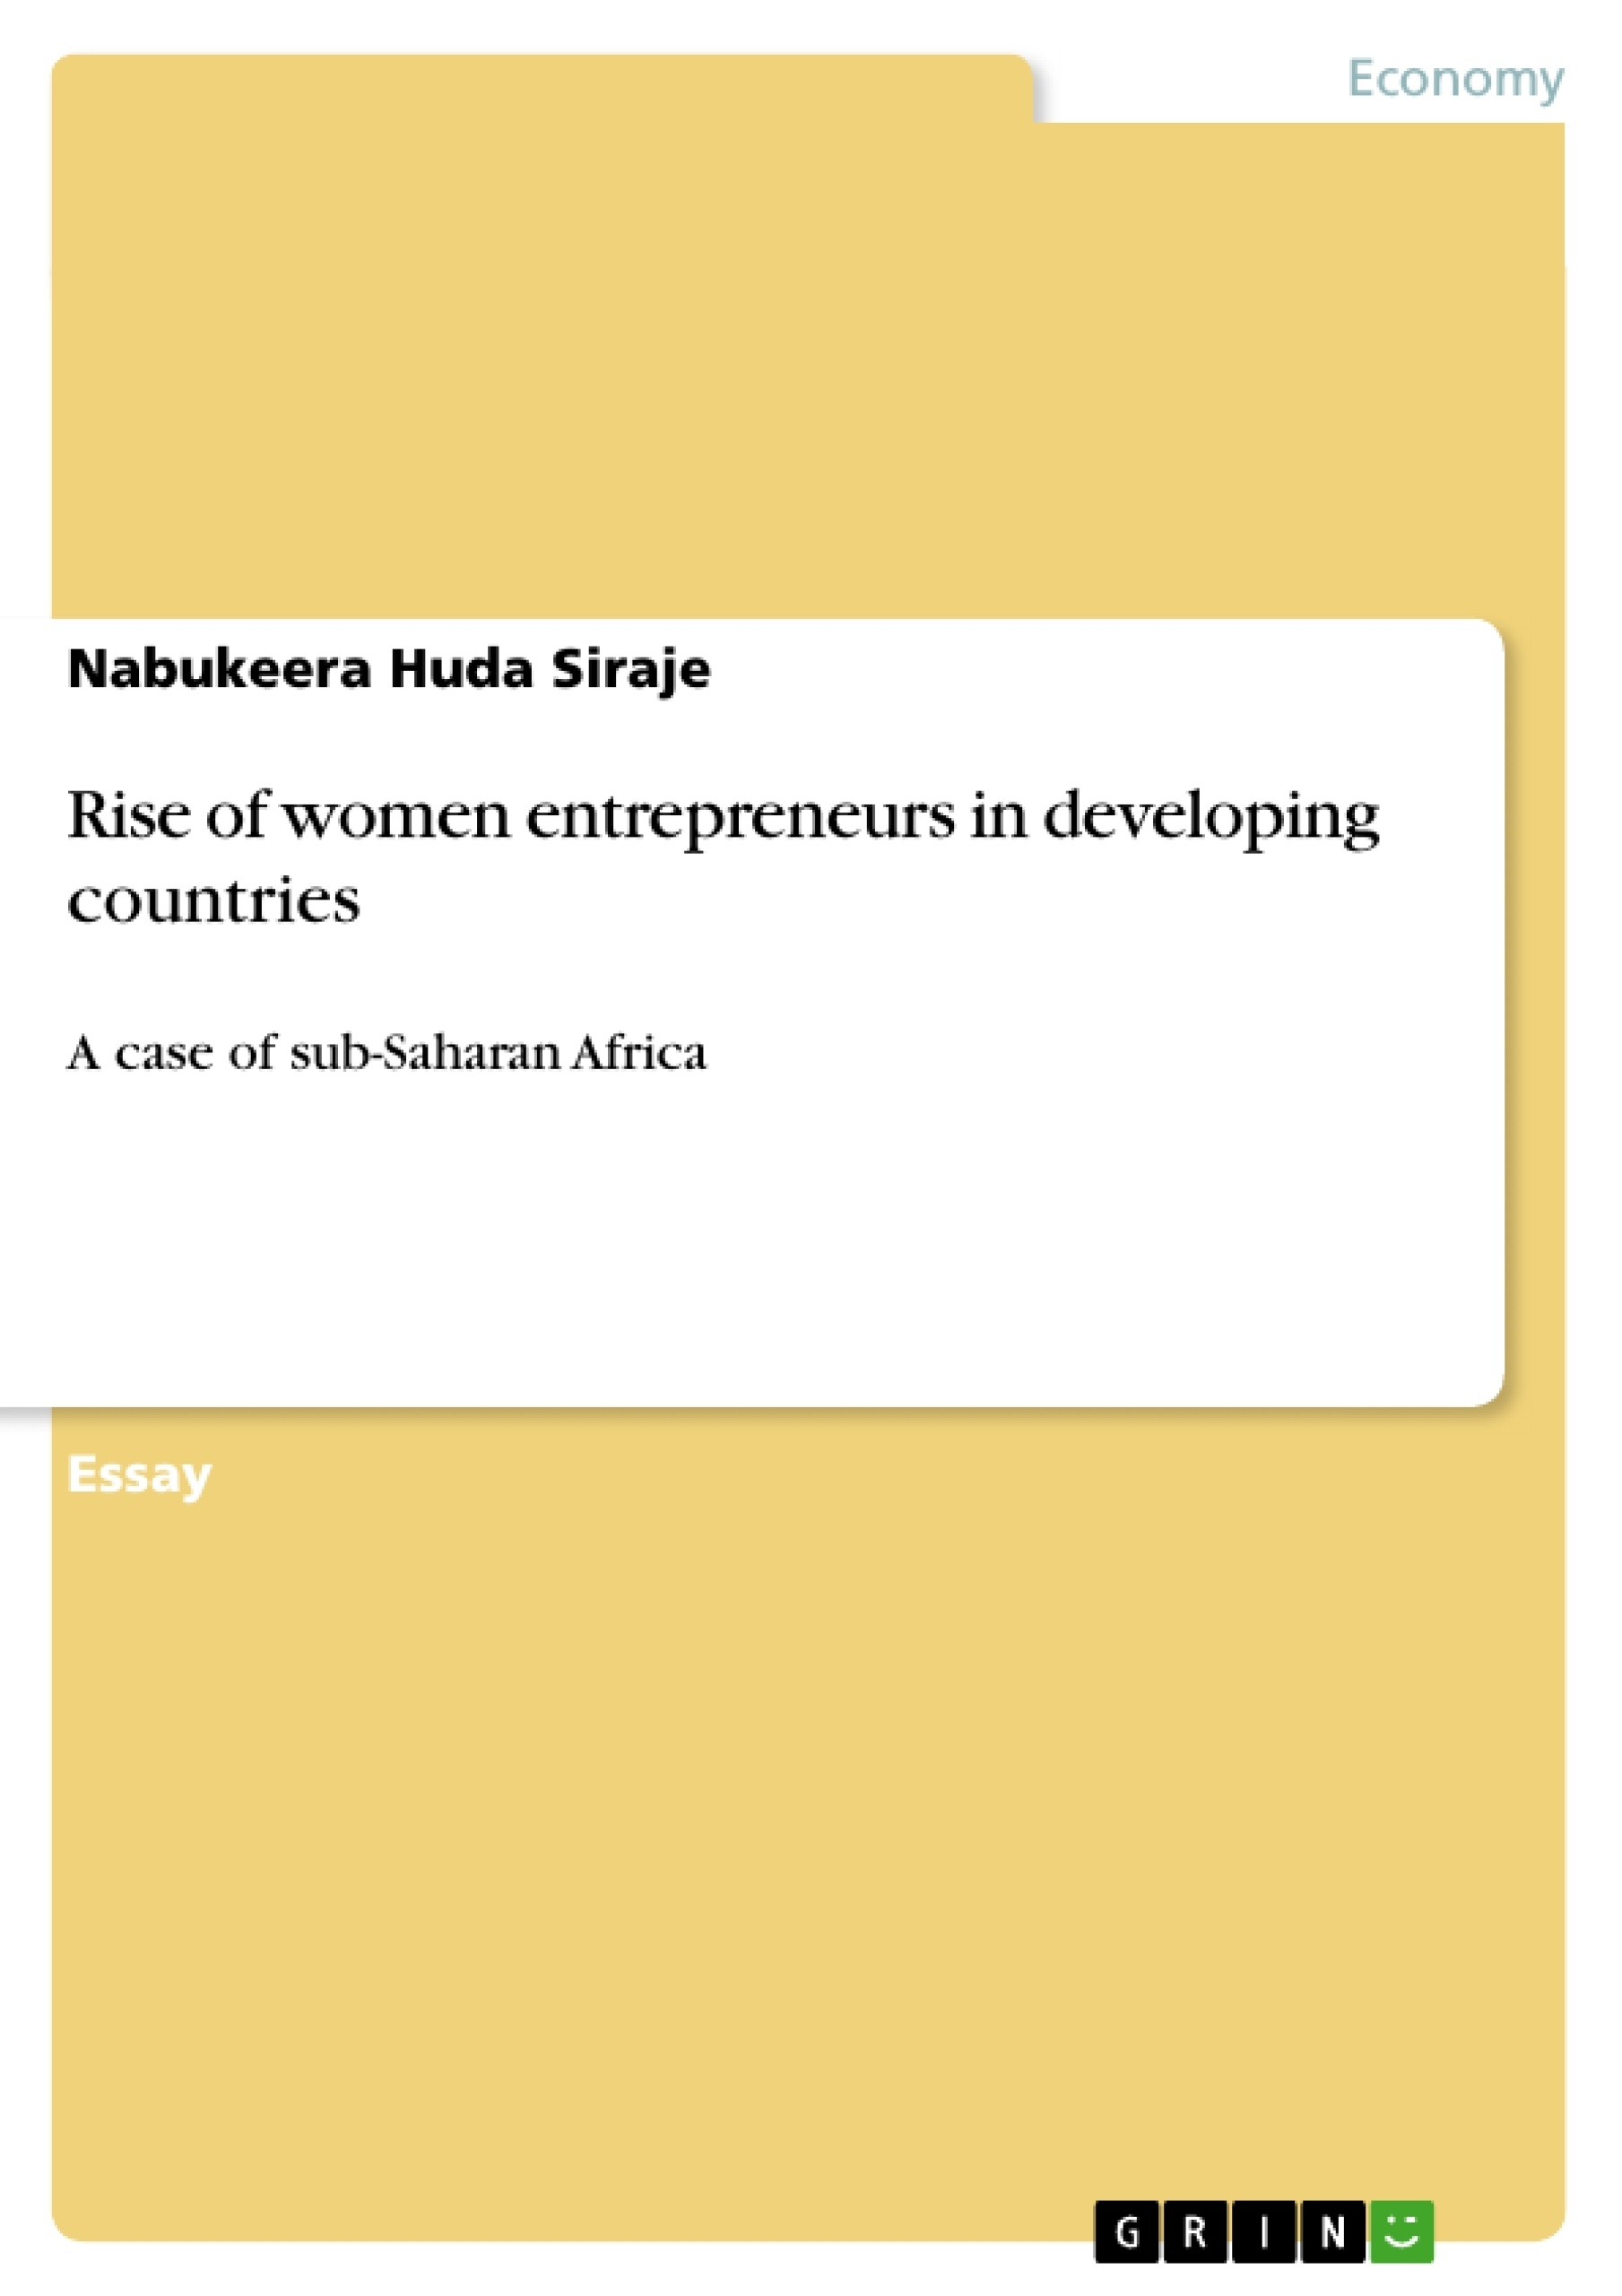 Title: Rise of women entrepreneurs in developing countries